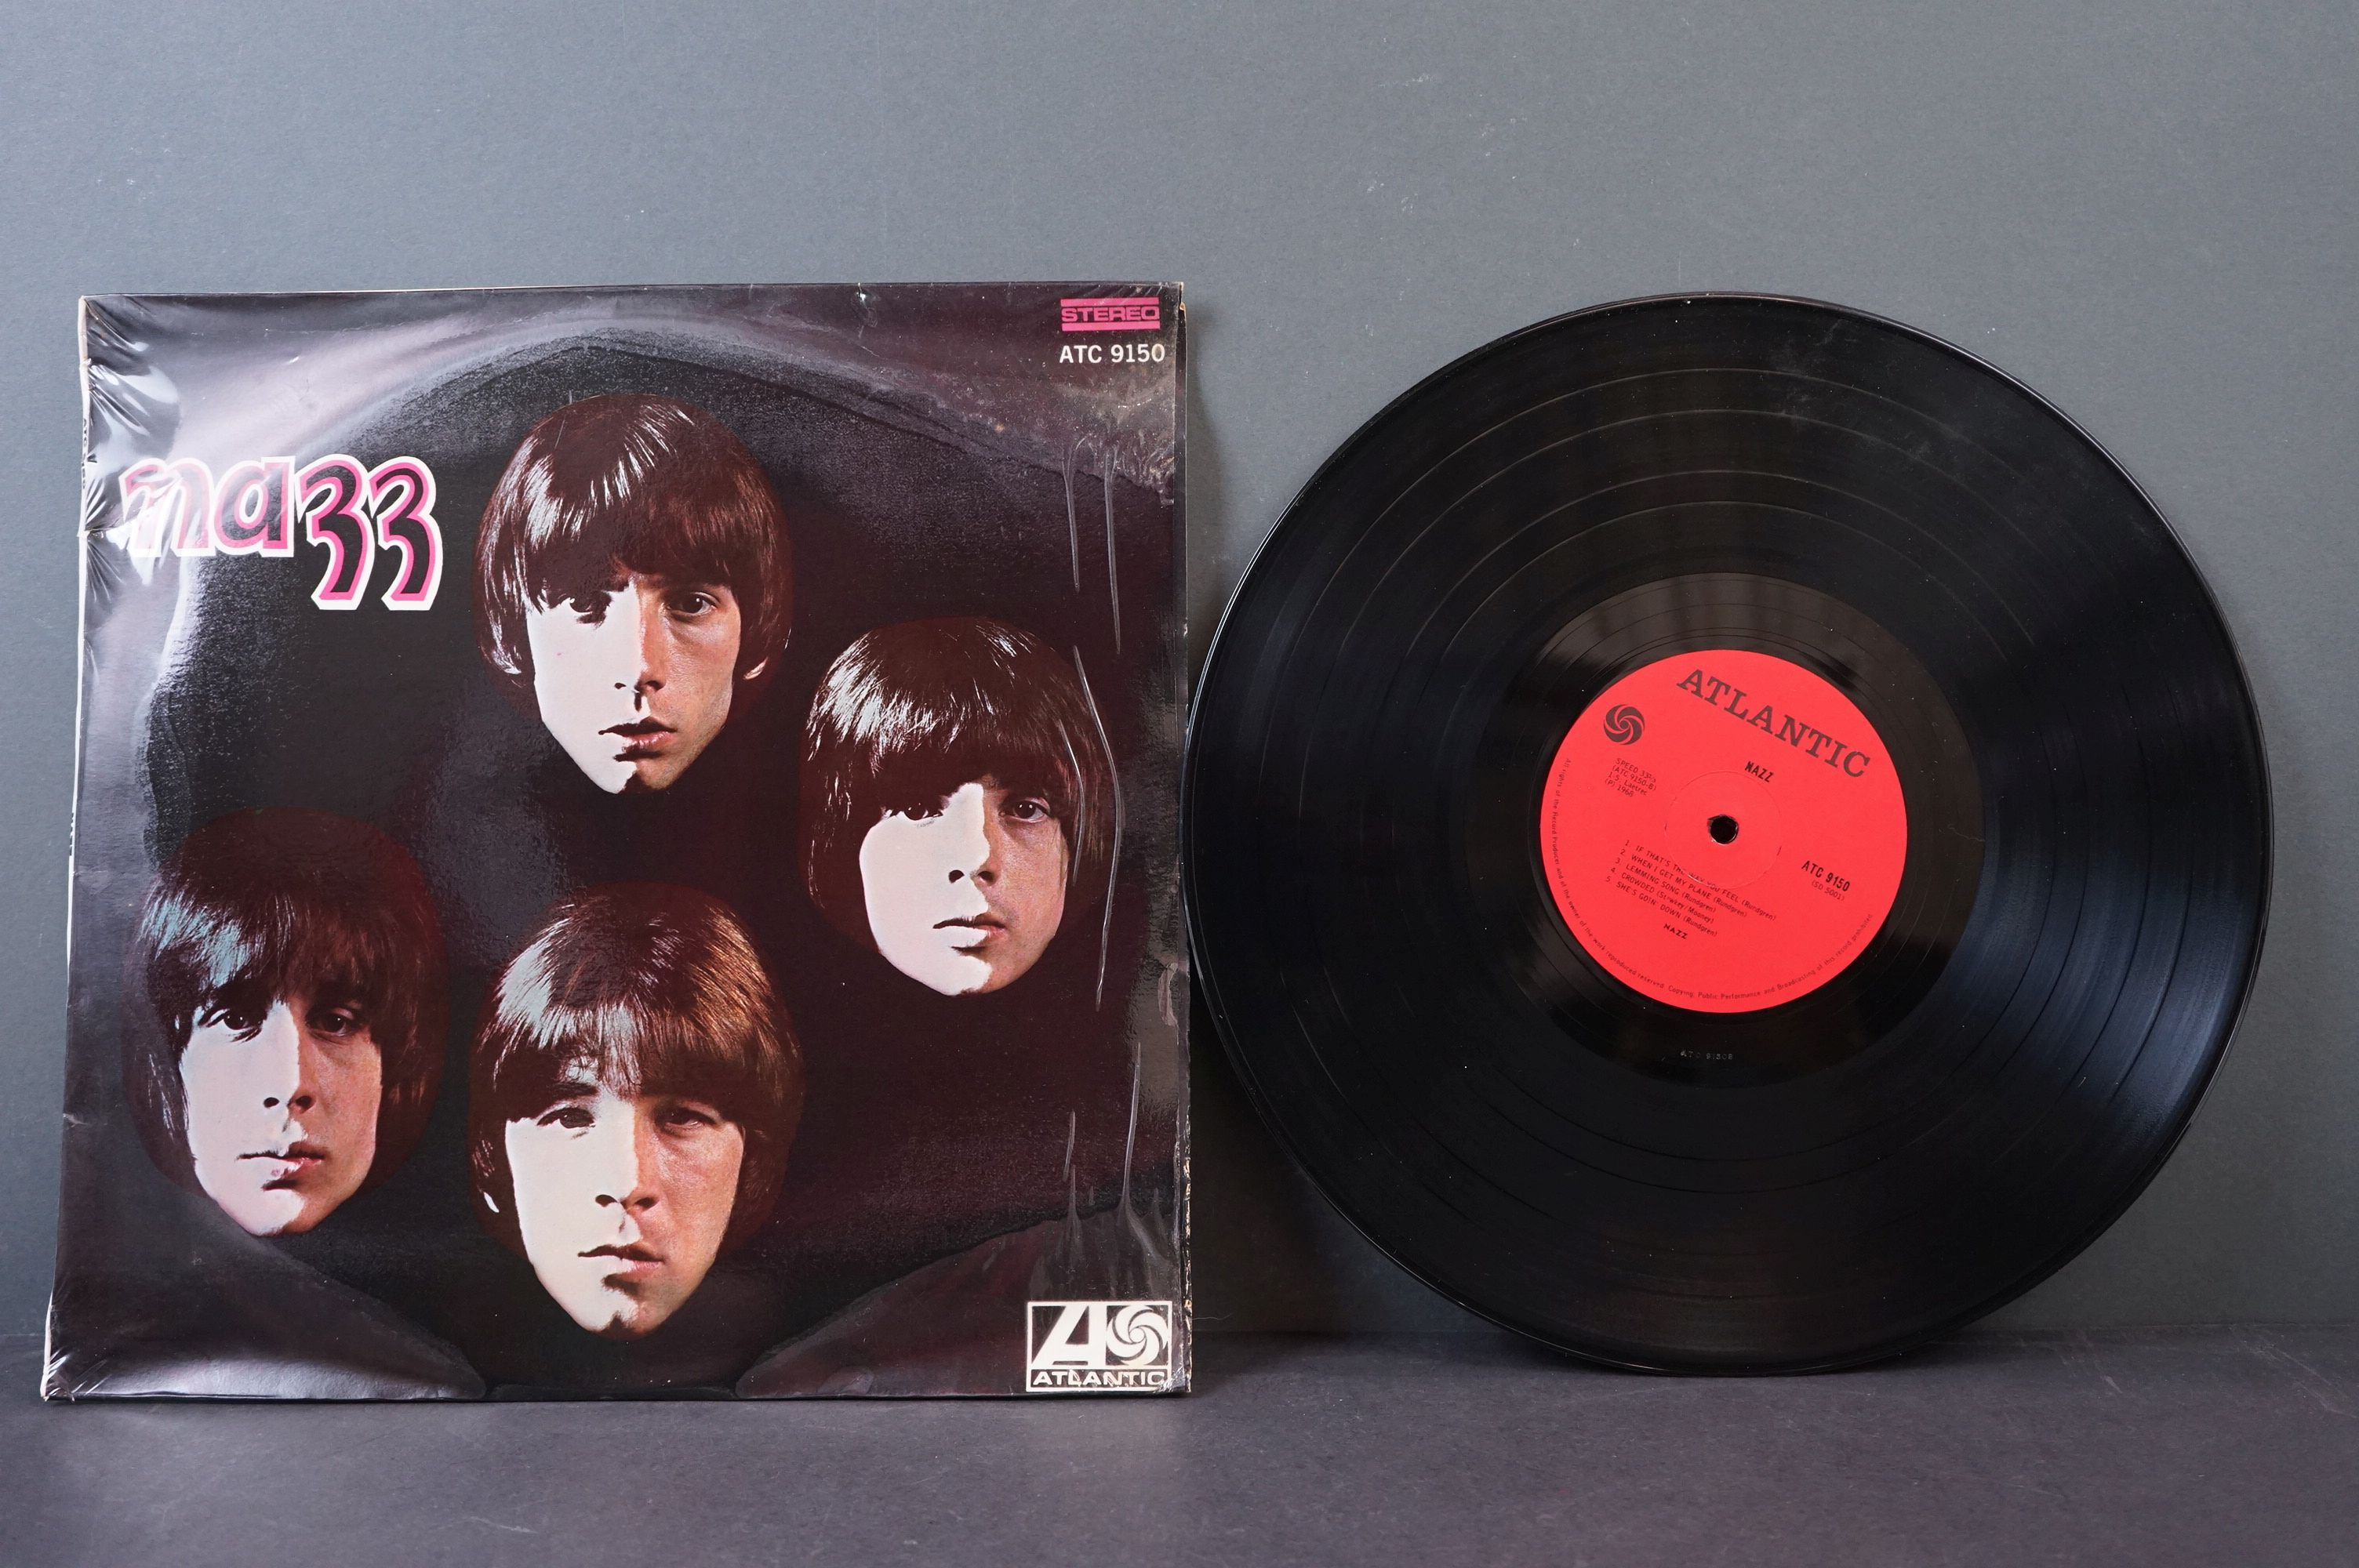 Vinyl - Psych / Rock / Garage - Four scarce African Pressing original albums to include Nazz - - Image 6 of 9